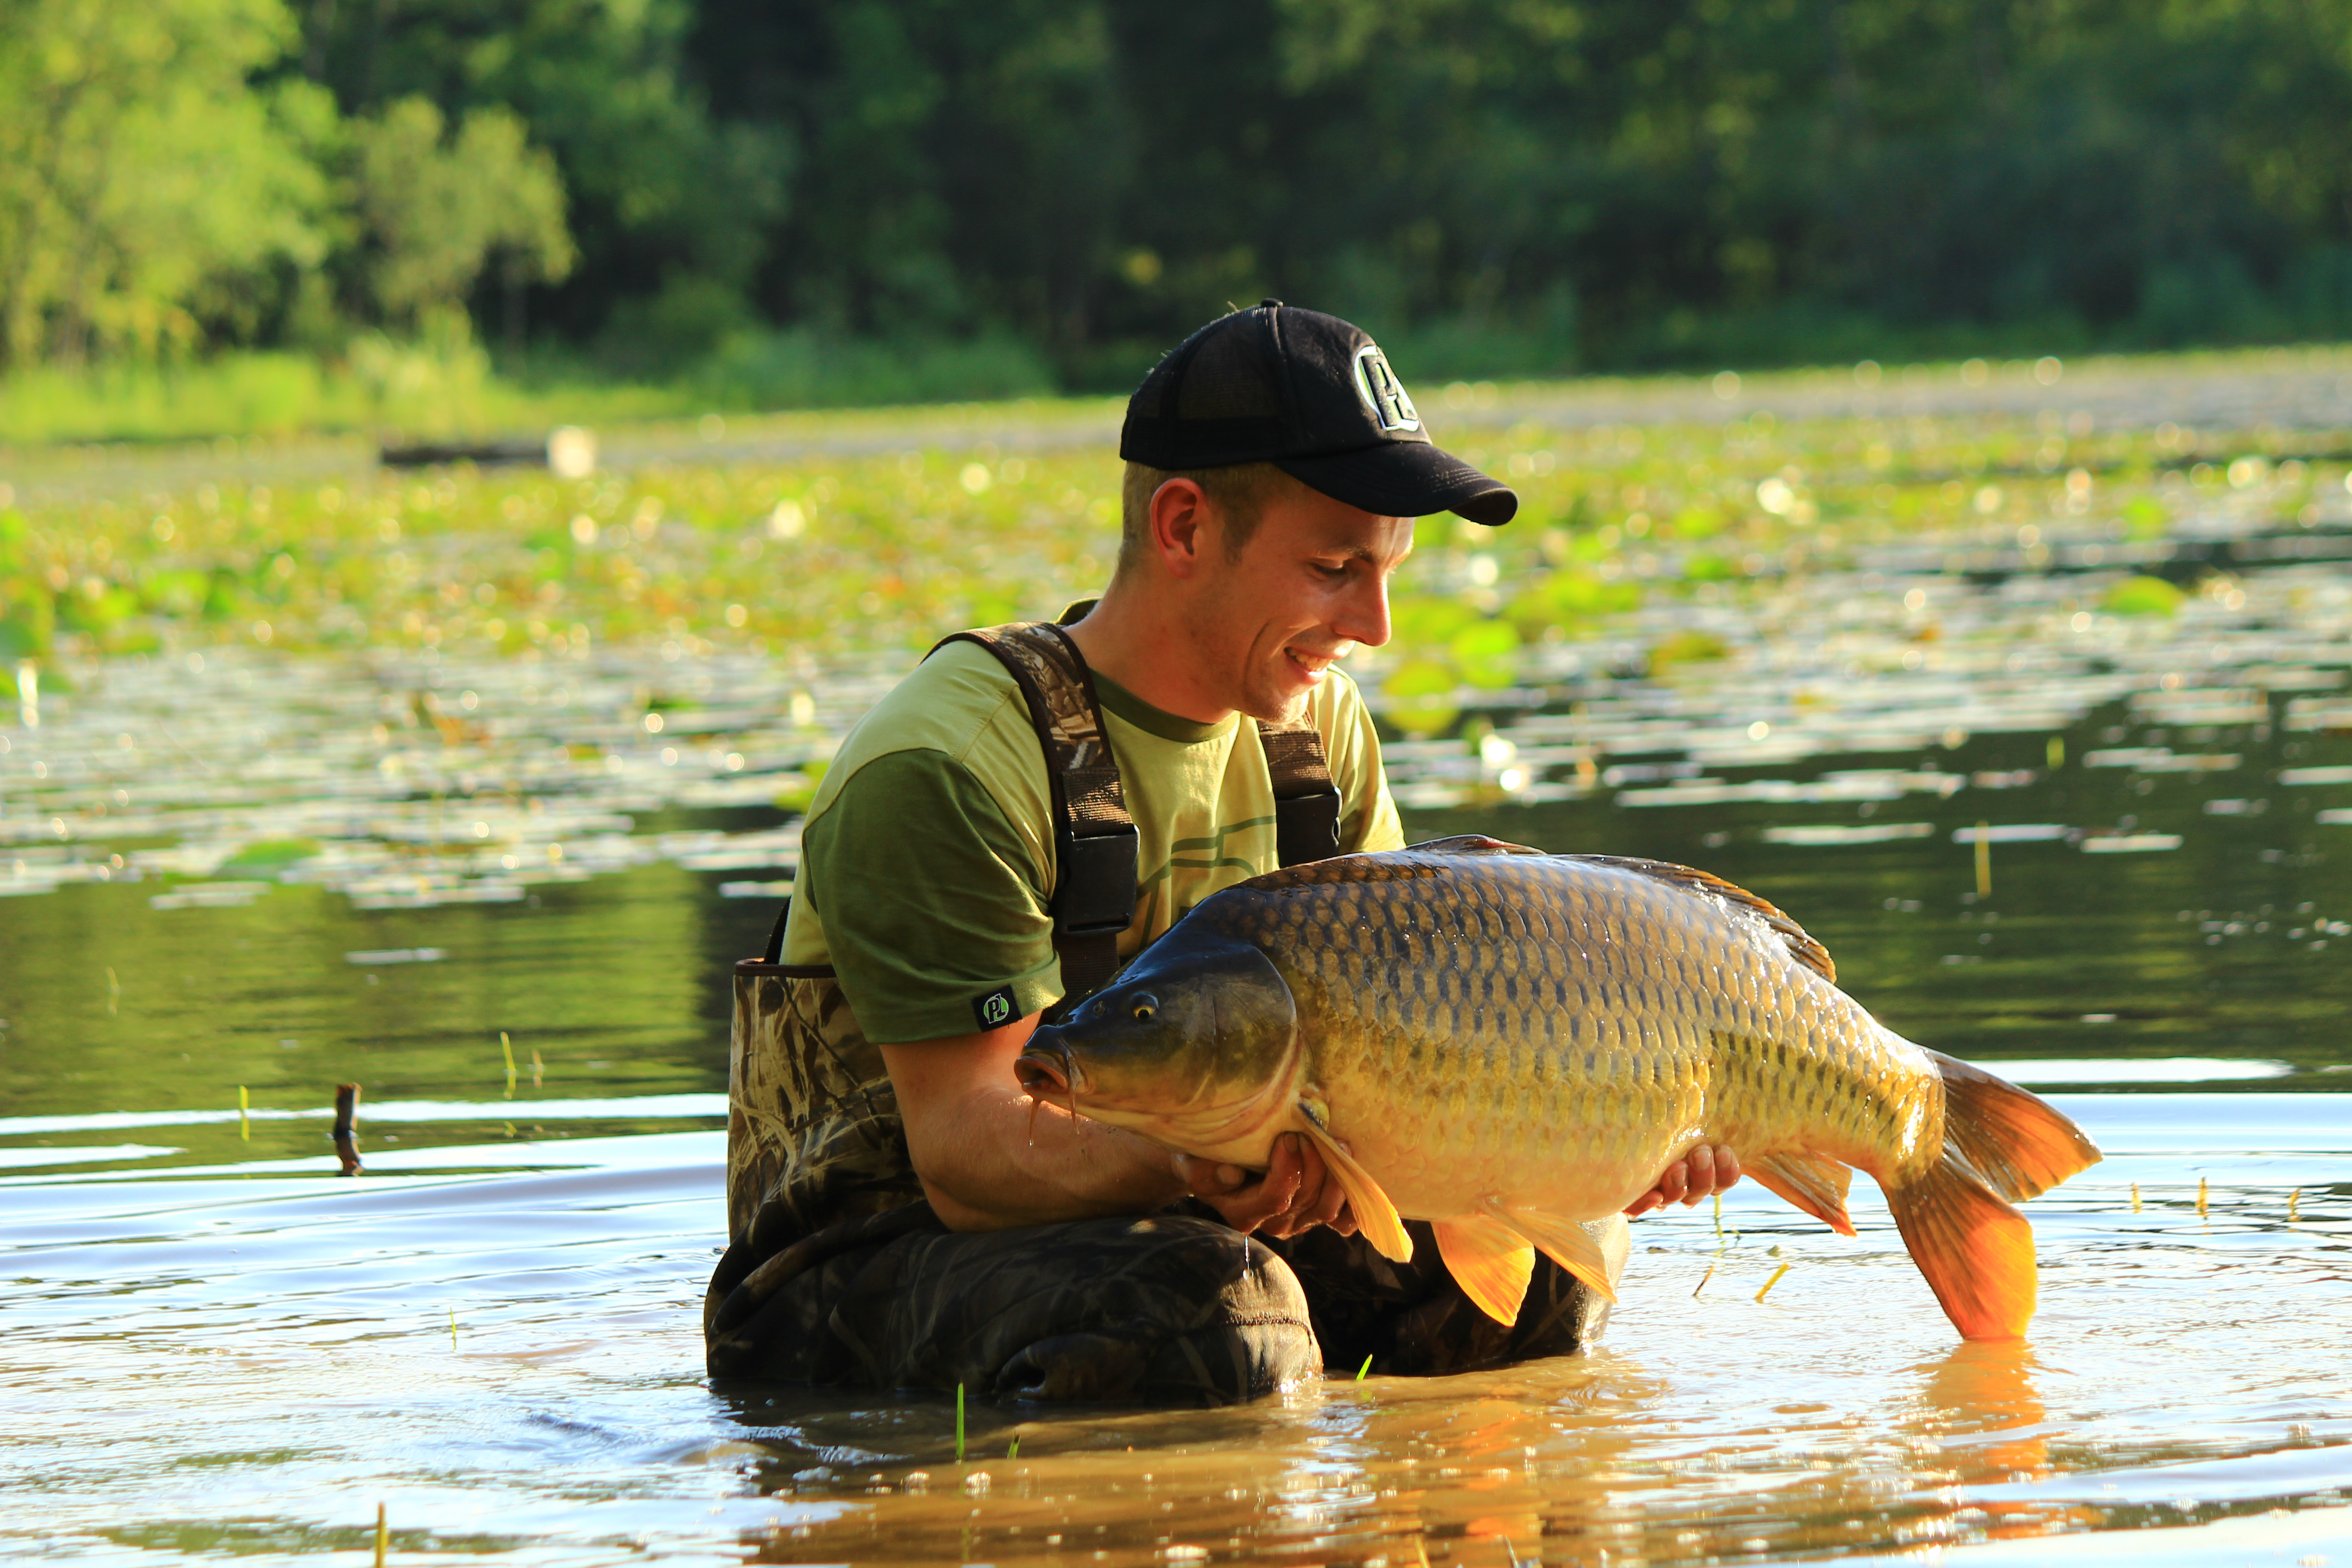 Another stunning common